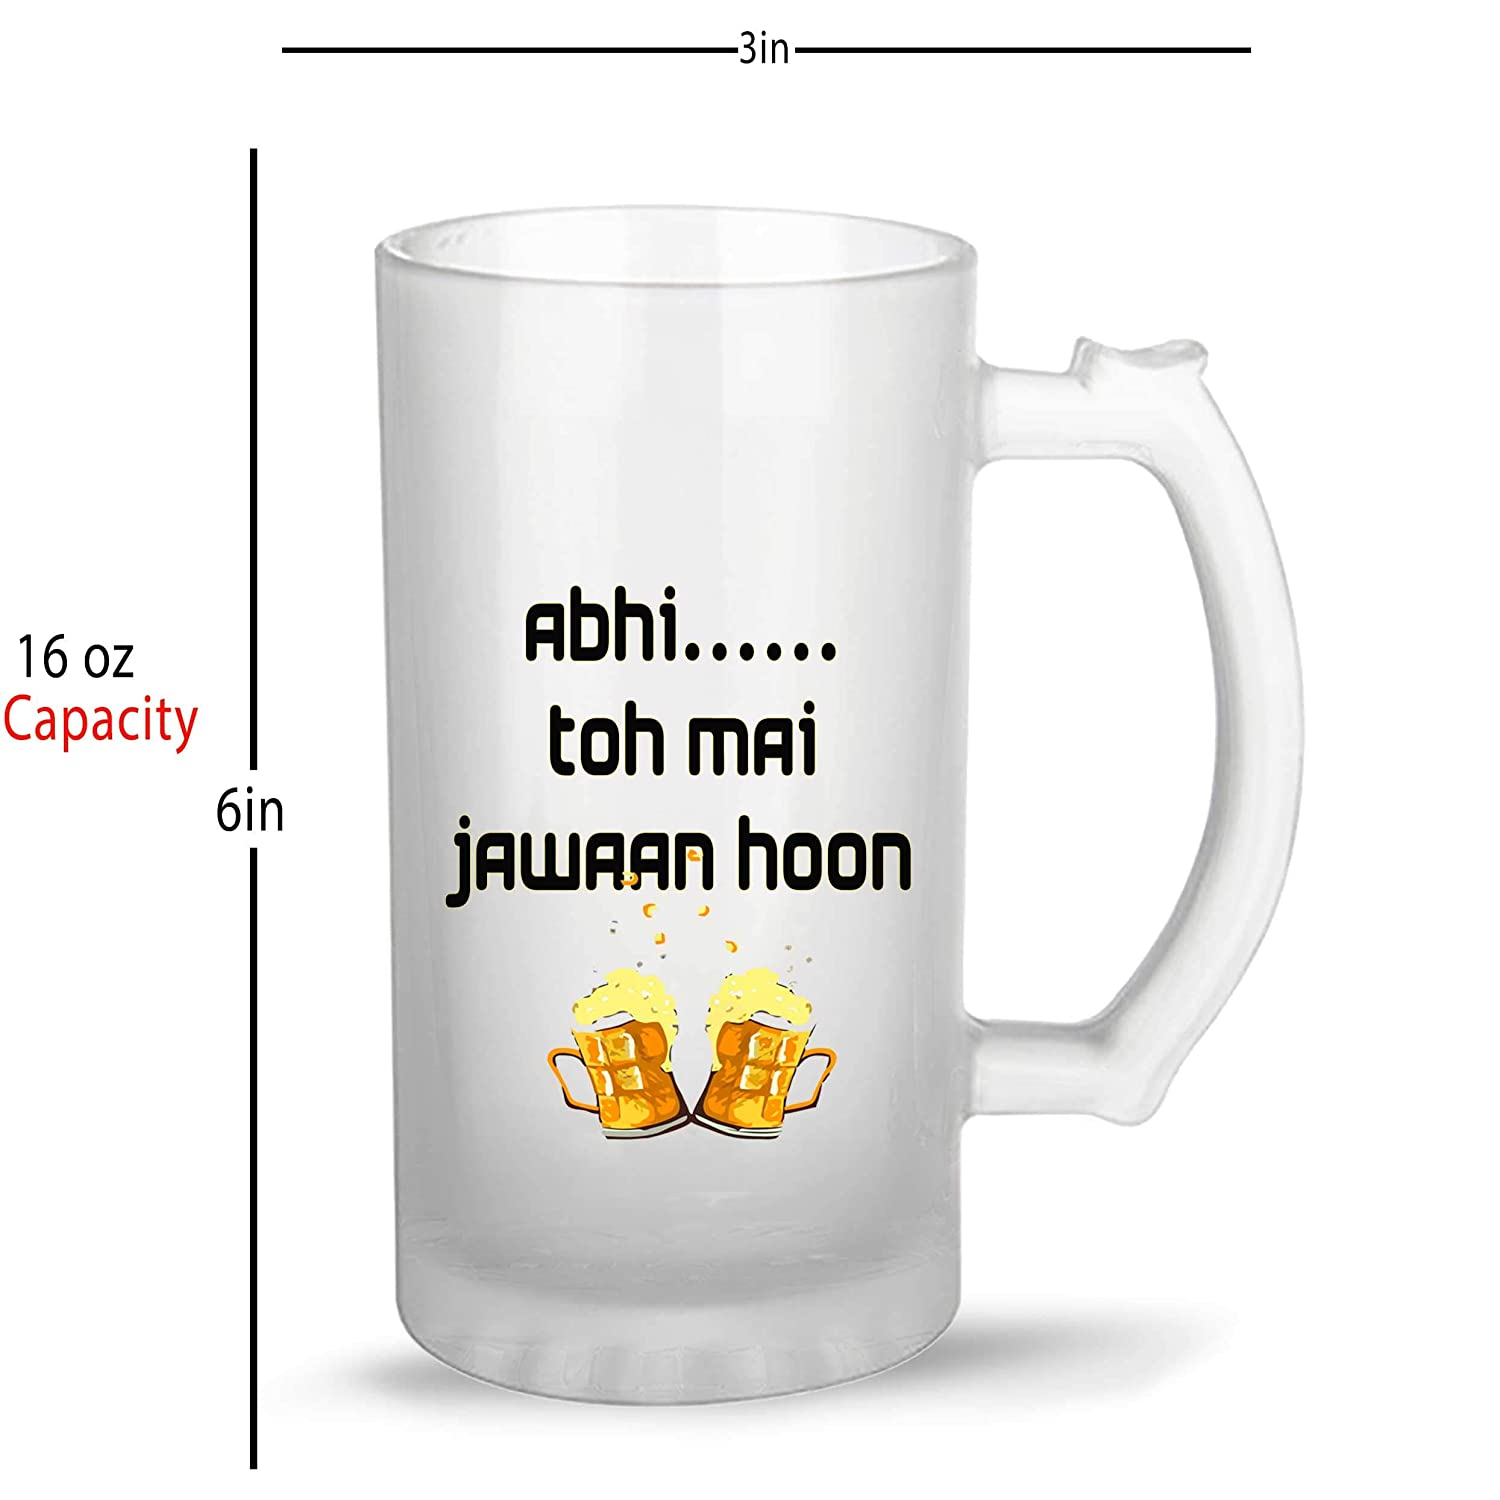 e1234d281 Buy iKraft Funny Quotes Printed Beer Mug- Abhi Toh Mai Jawaan Hoon Printed Beer  Mug for Friends Online at Low Prices in India - Amazon.in